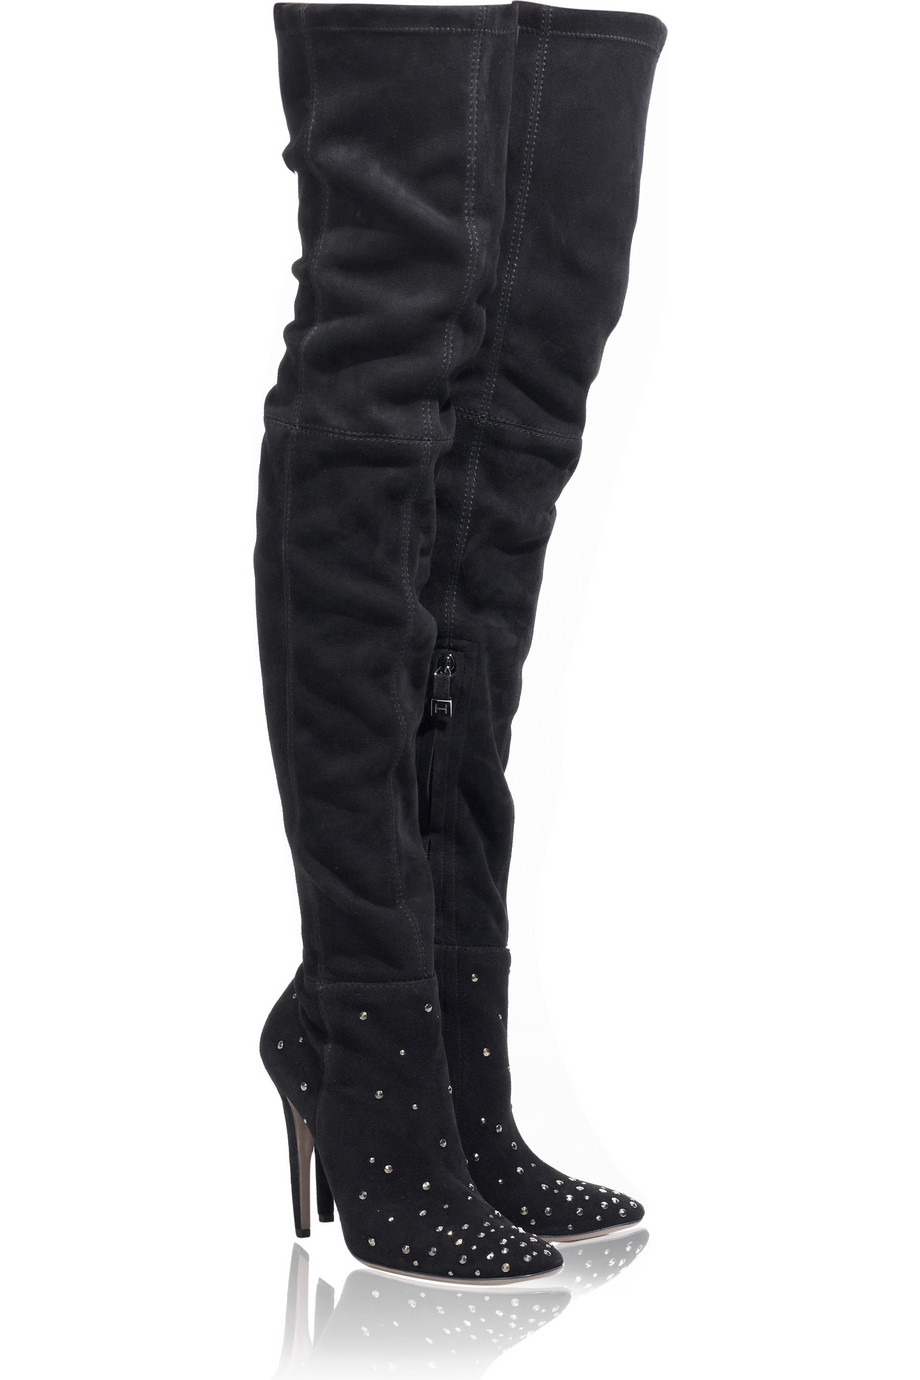 Halston City Thigh-high Studded Boots in Black | Lyst